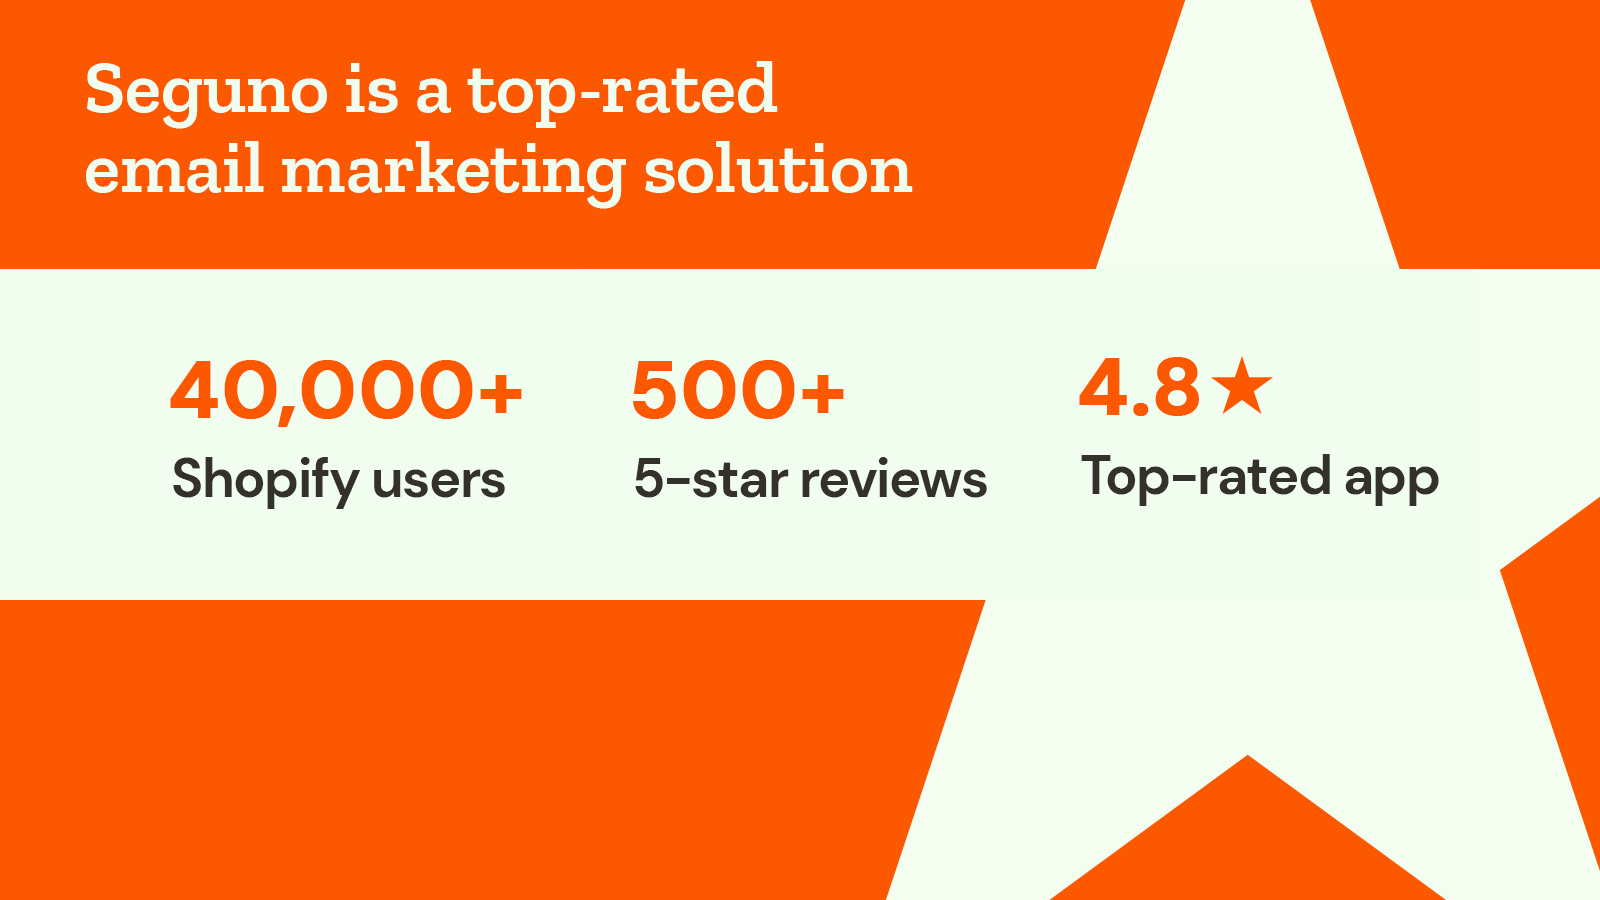 Seguno social proof with install stats and top App Store rating